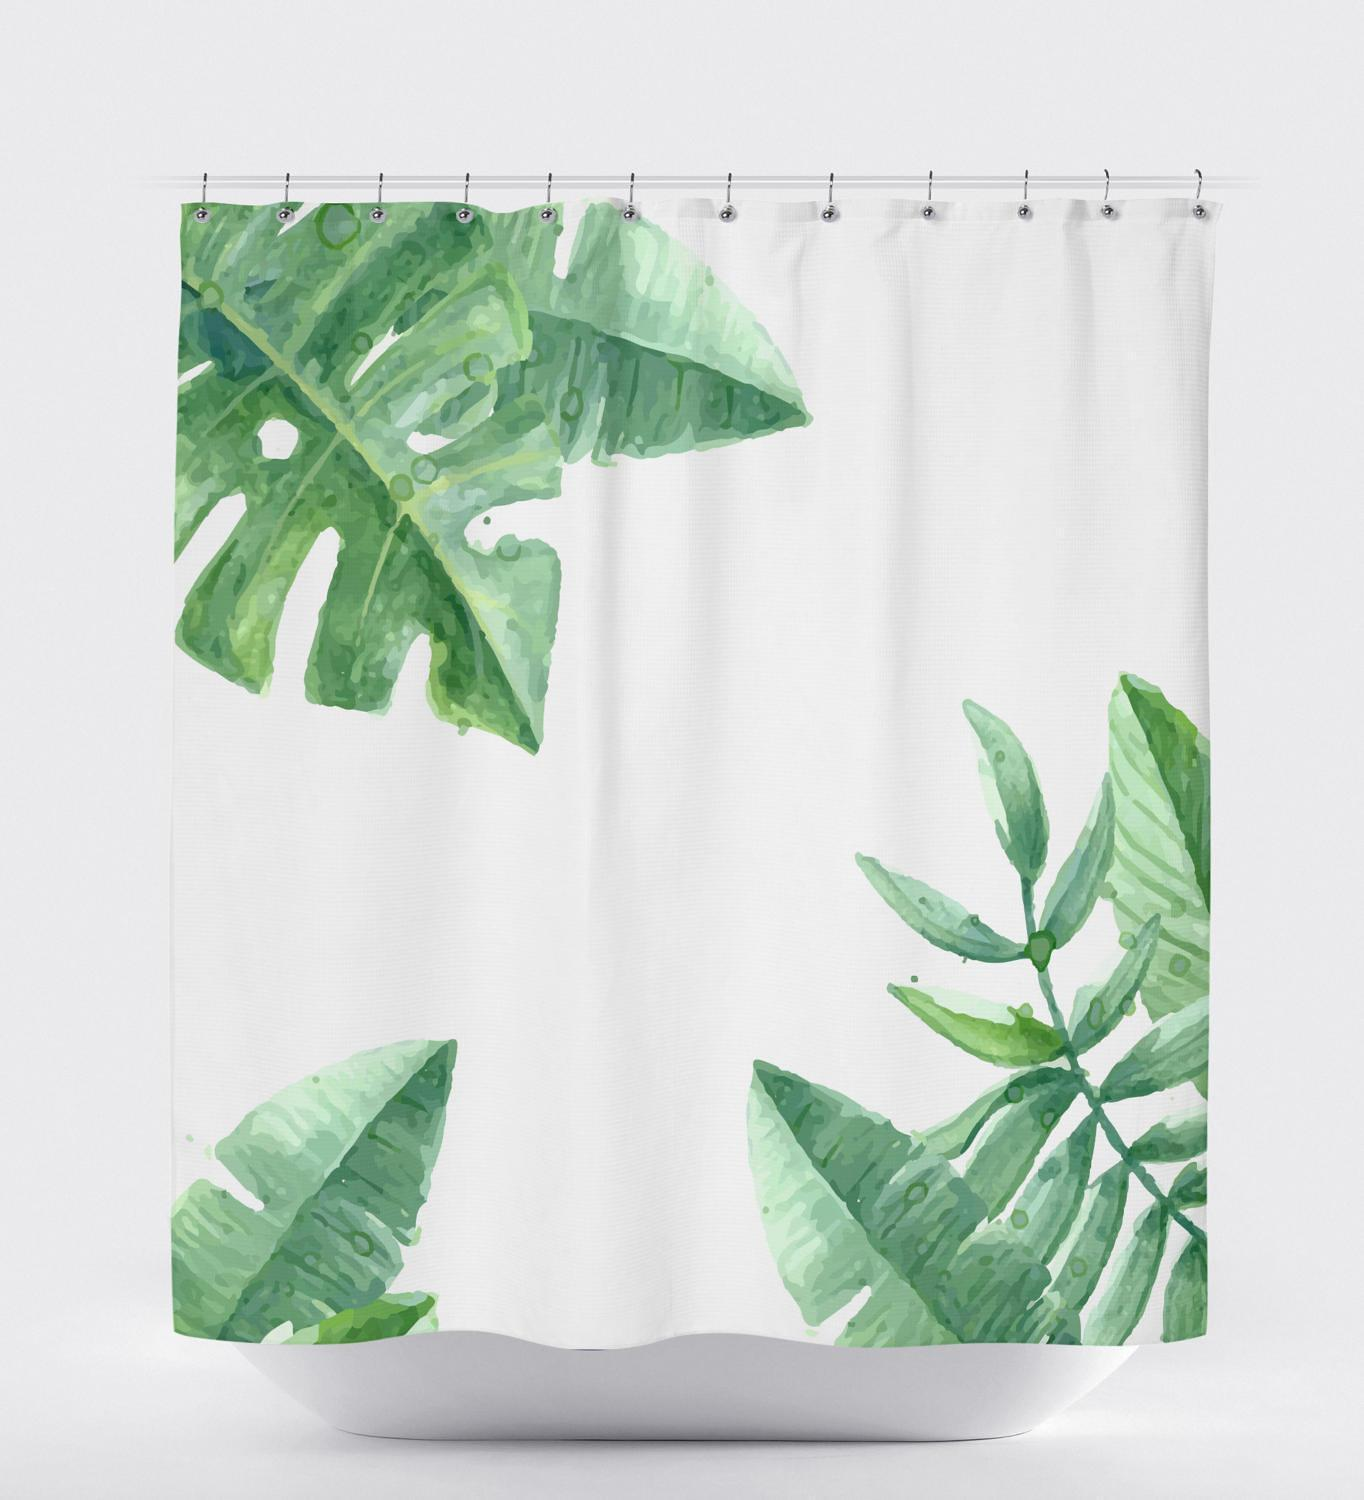 Tropical Shower Curtain Banana Leaf Shower Curtain Nature Shower Curtain Leaf Shower Curtain Child Be Wild This category provides us the most amazing and beautiful designs, like no other. tropical shower curtain banana leaf shower curtain nature shower curtain leaf shower curtain